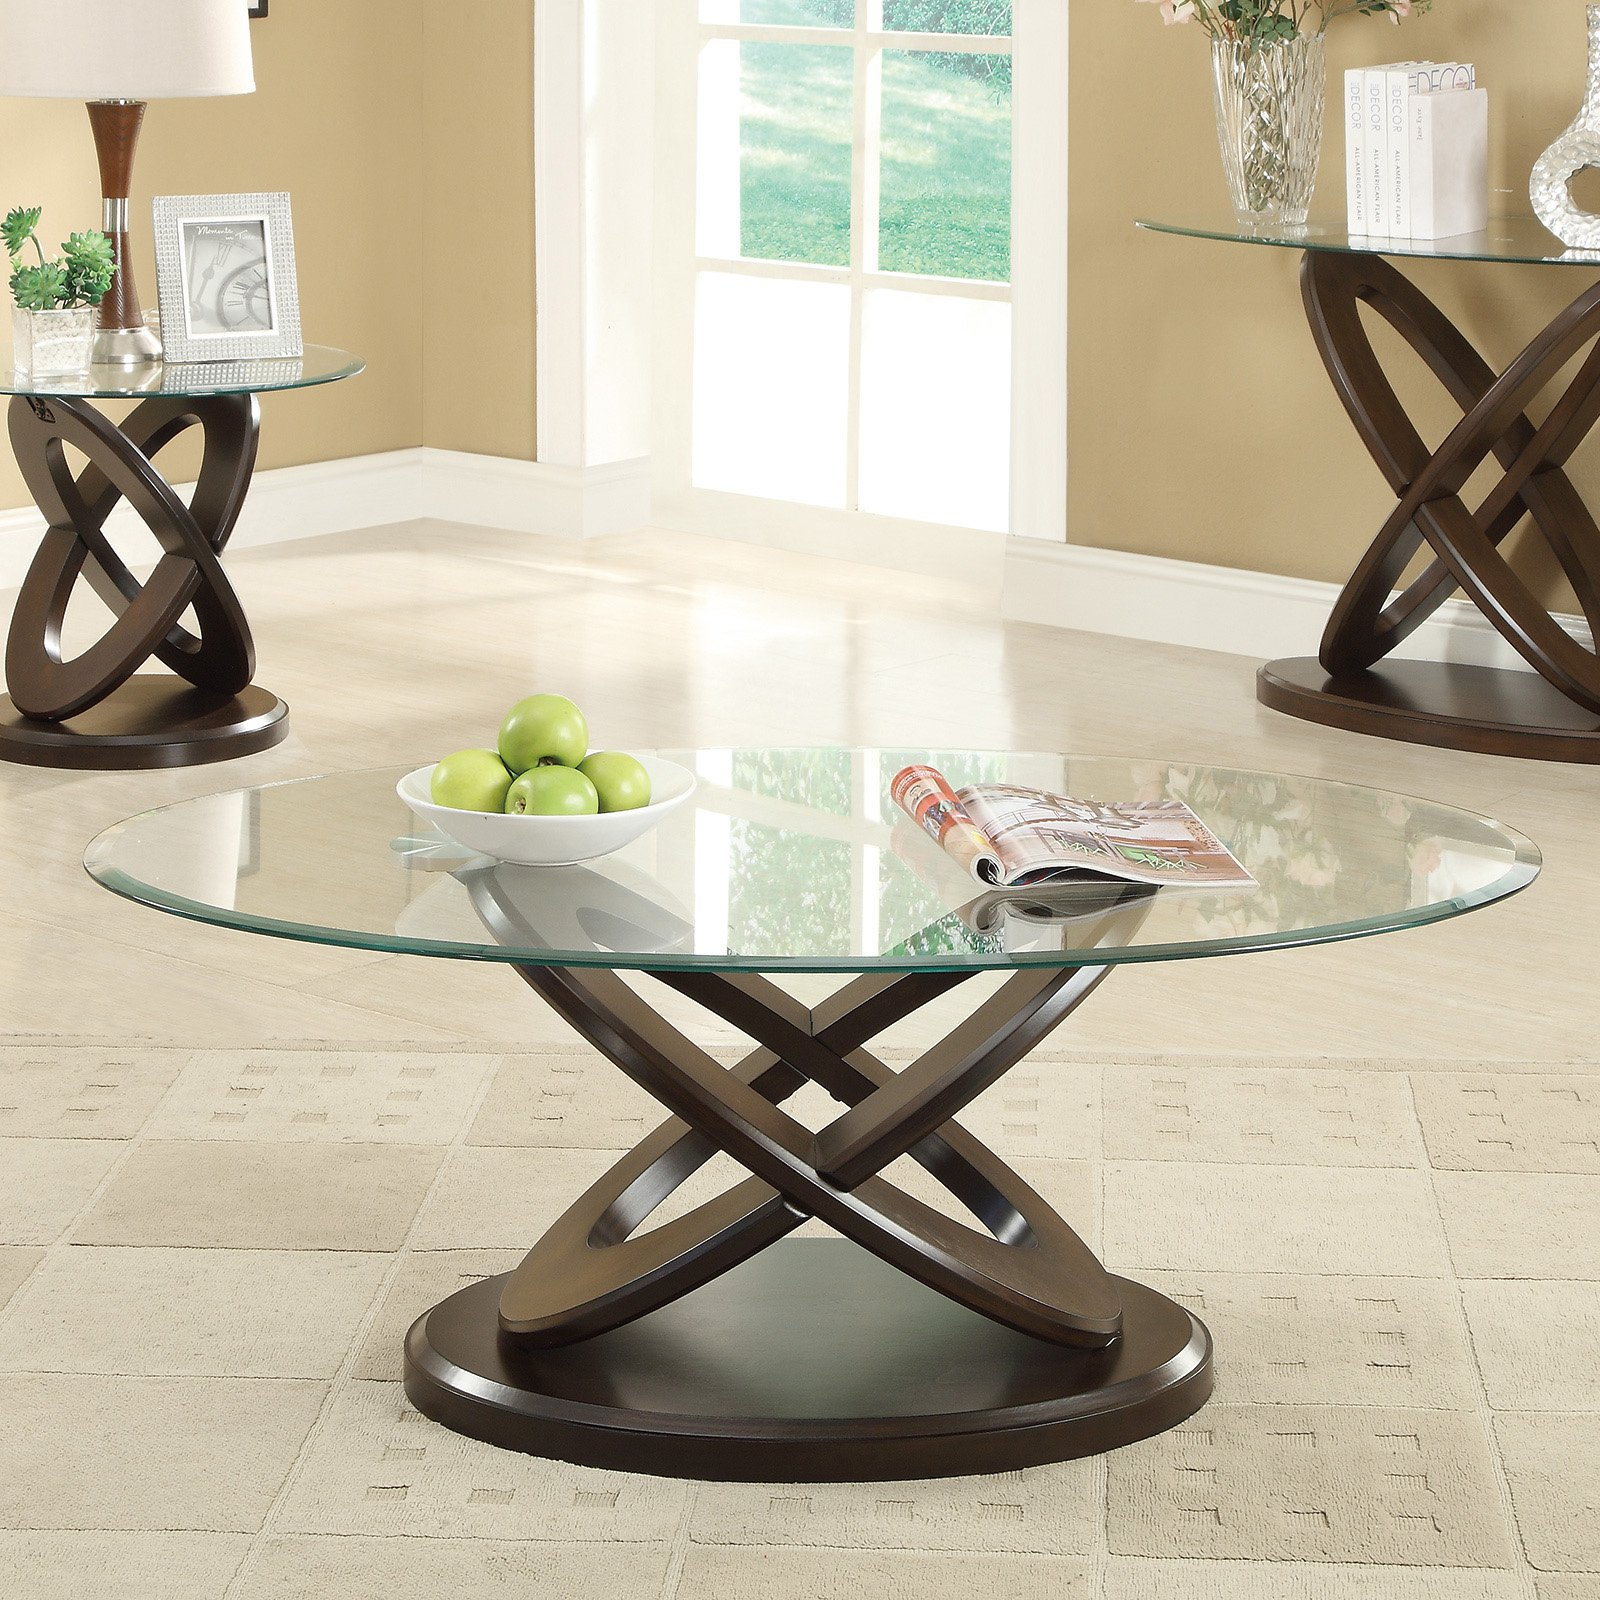 Oval Glass Coffee Table Decor  from i5.walmartimages.com